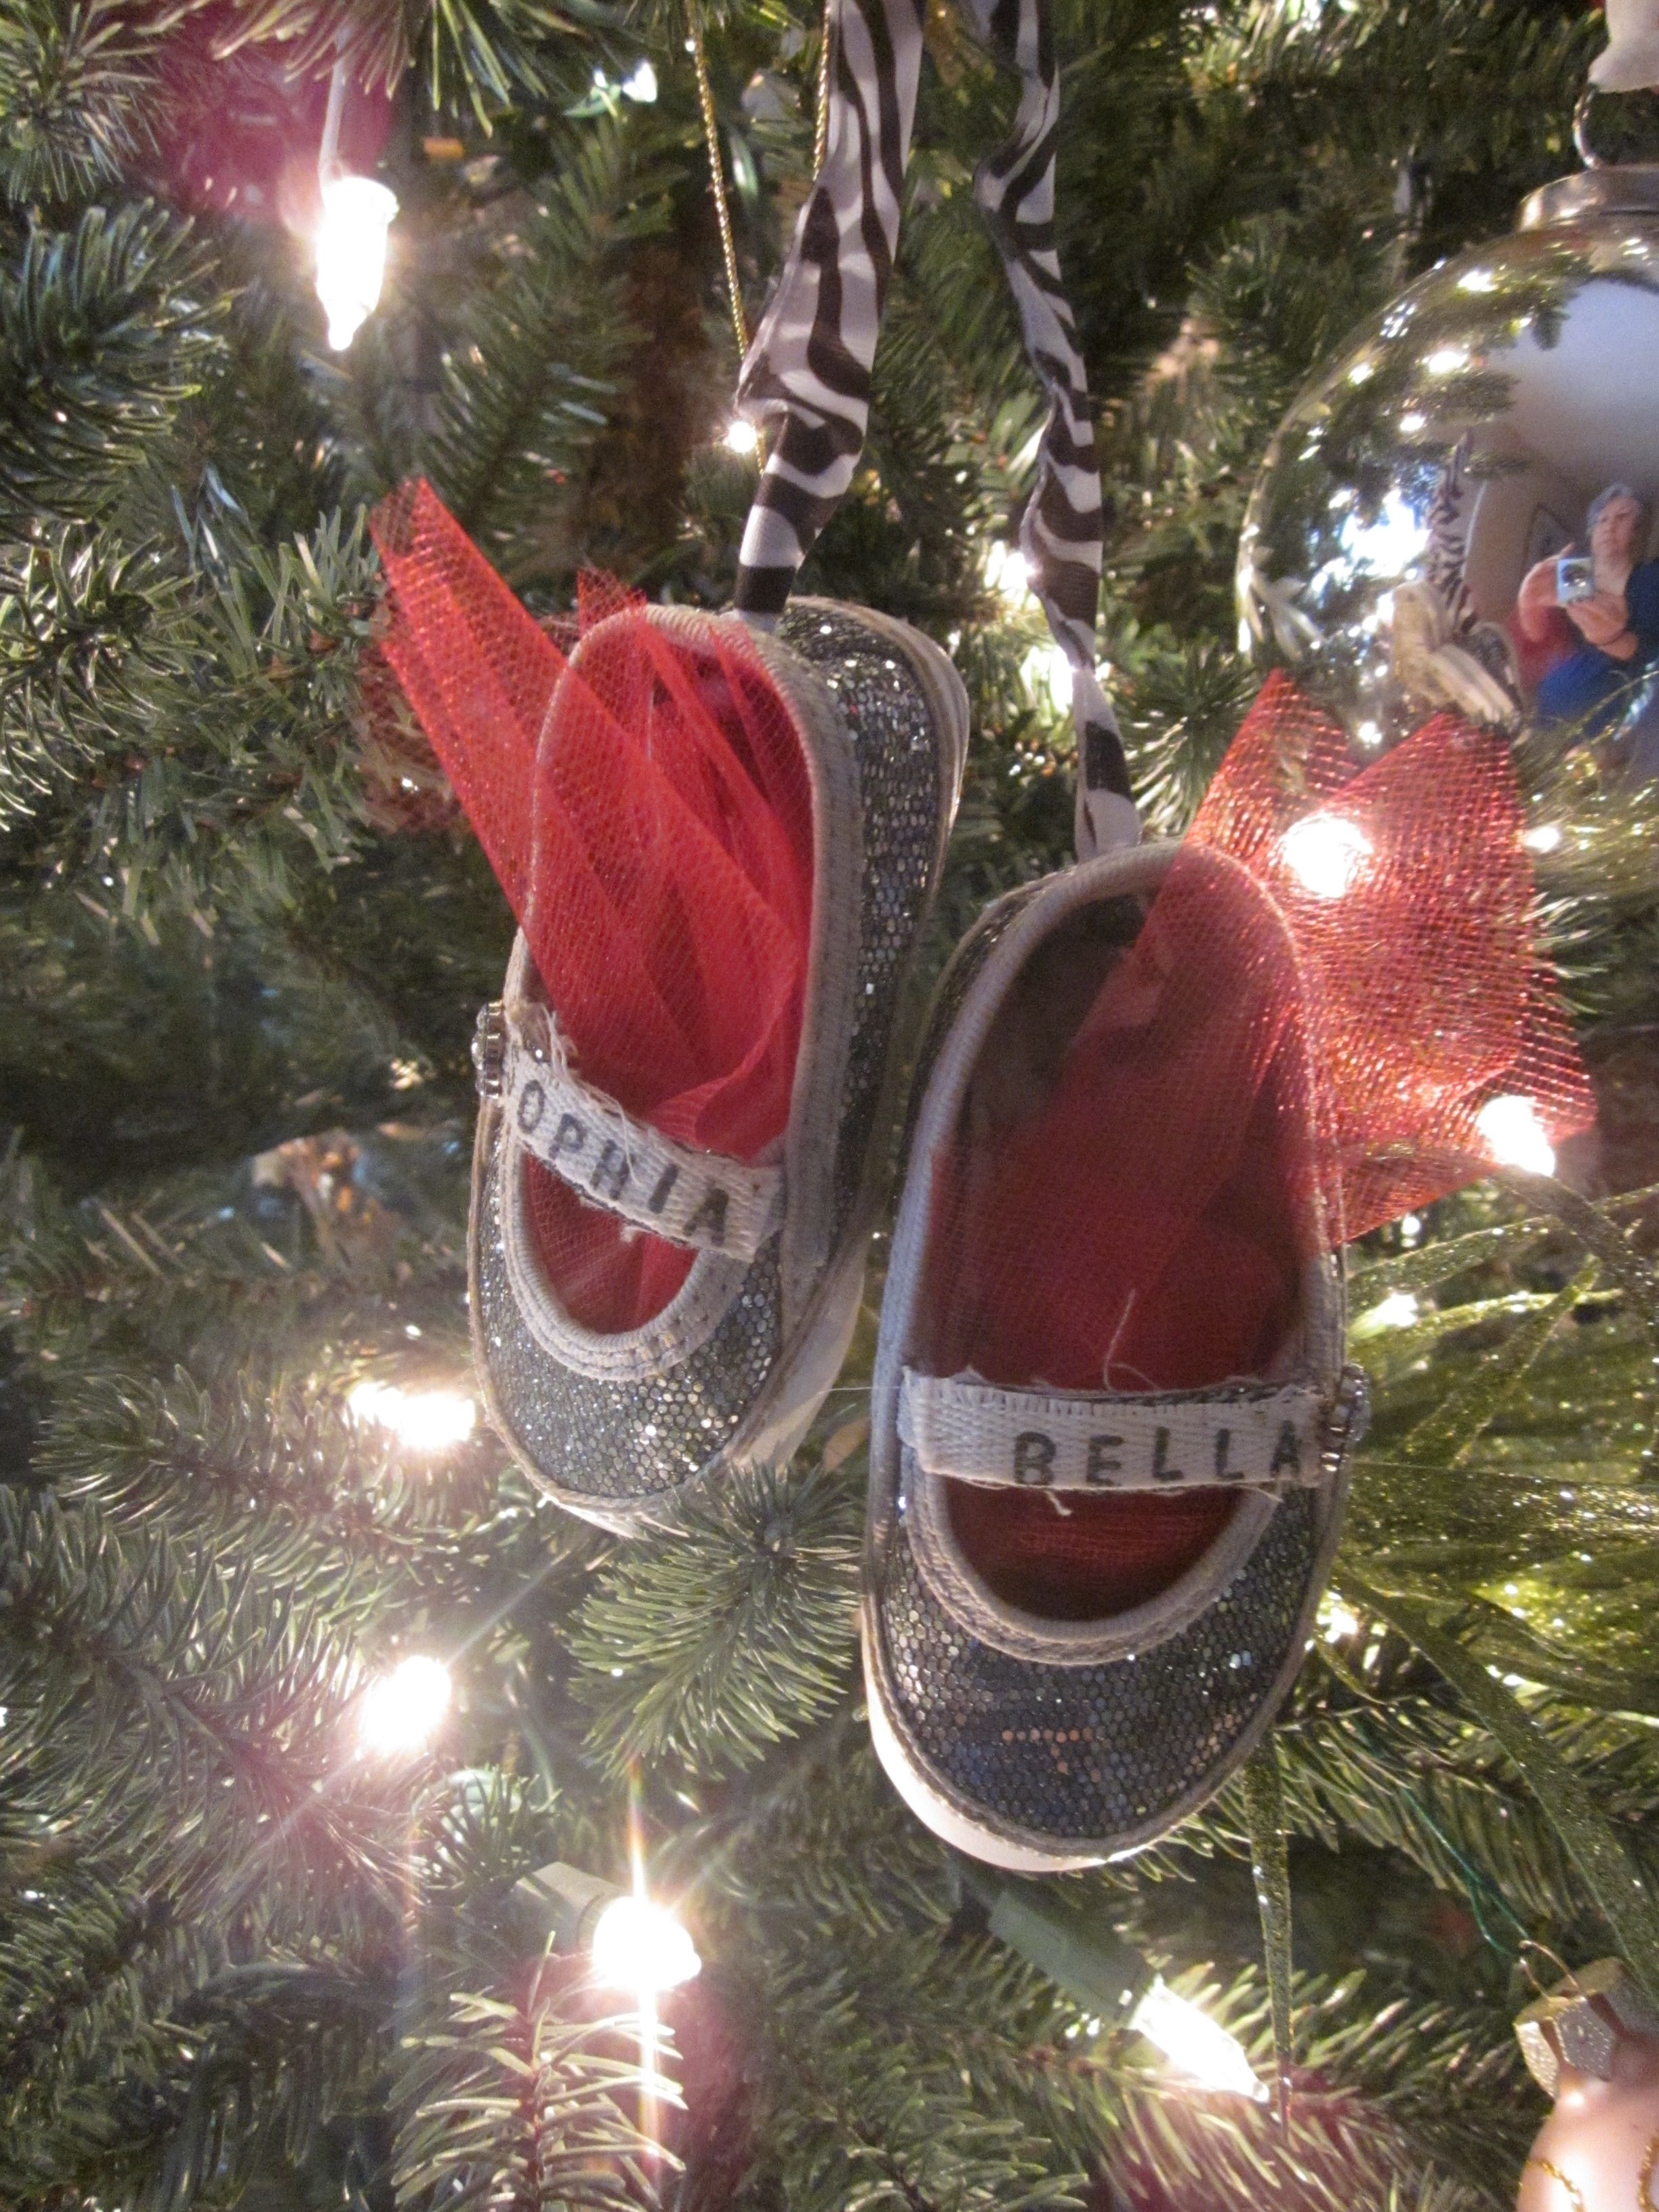 Baby shoe ornament My mom is so crafty Holidays